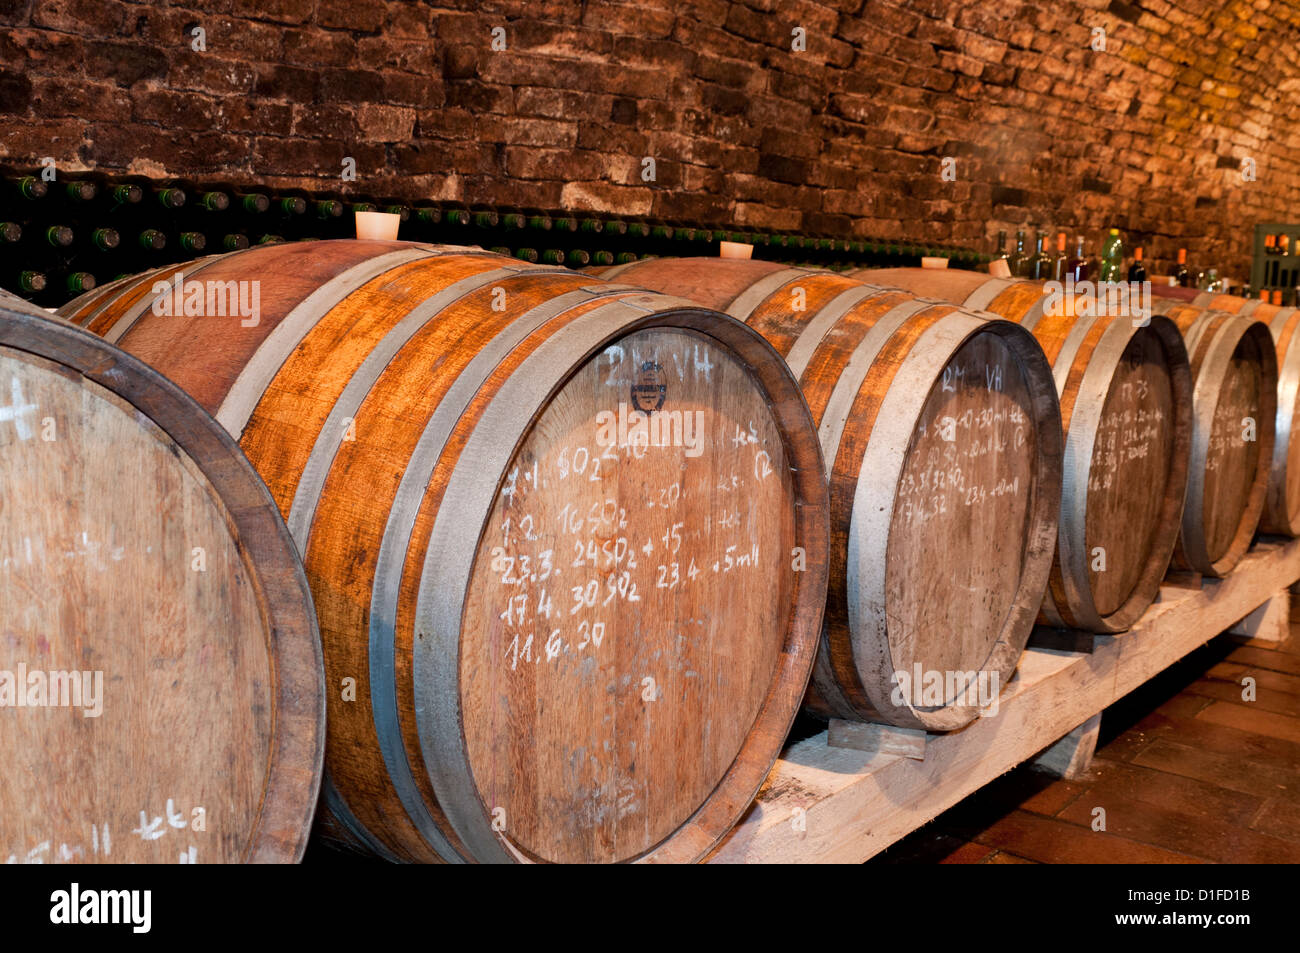 Wooden wine barrels and mould on walls of wine cellar of winemaker Petr Marada, village of Mikulcice, Brnensko, - Stock Image